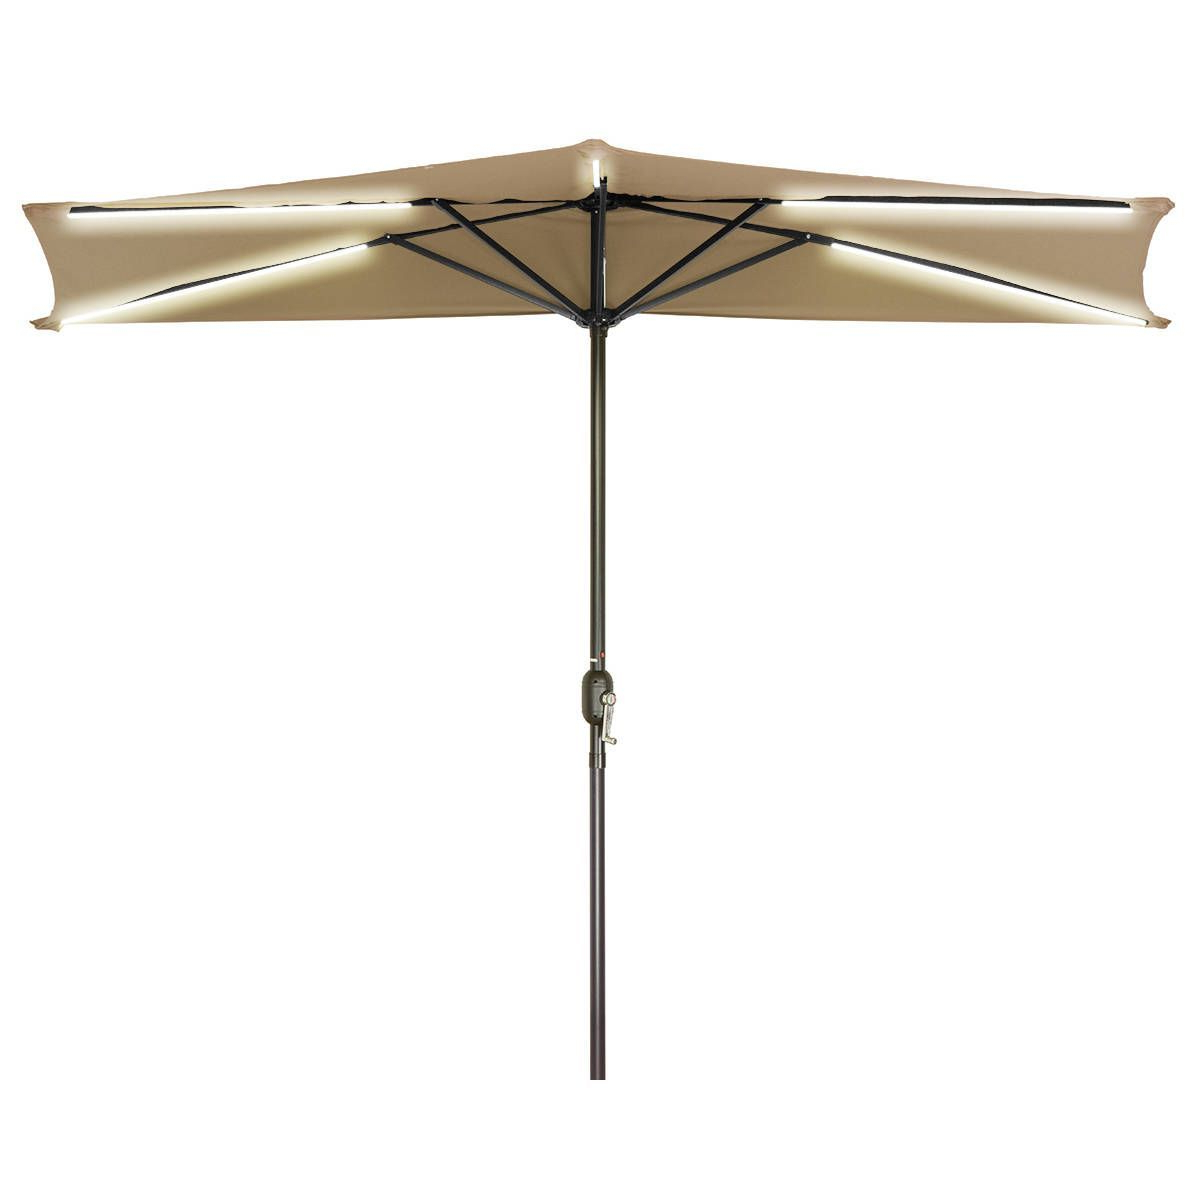 Spitler Square Cantilever Umbrellas Within 2020 Pinterest (View 17 of 20)